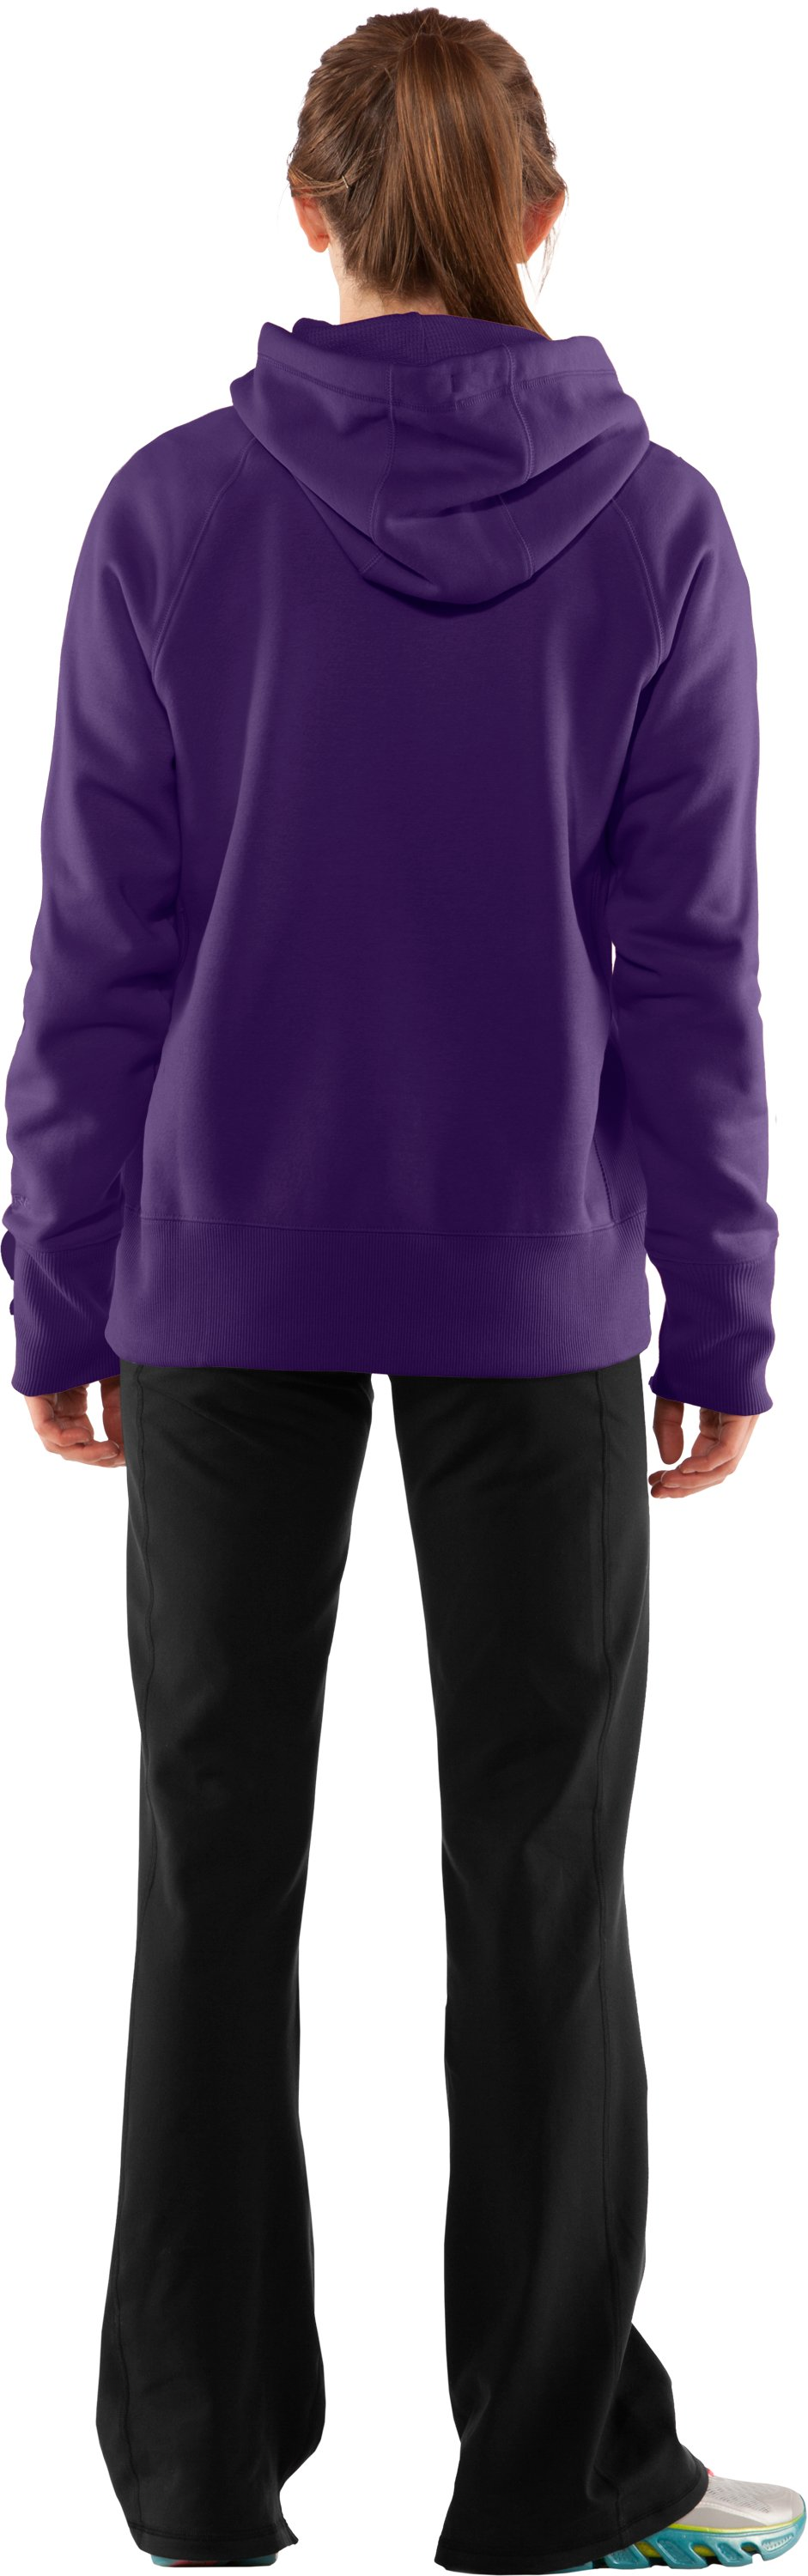 Women's Charged Cotton® Storm Hoodie, Zone, Back